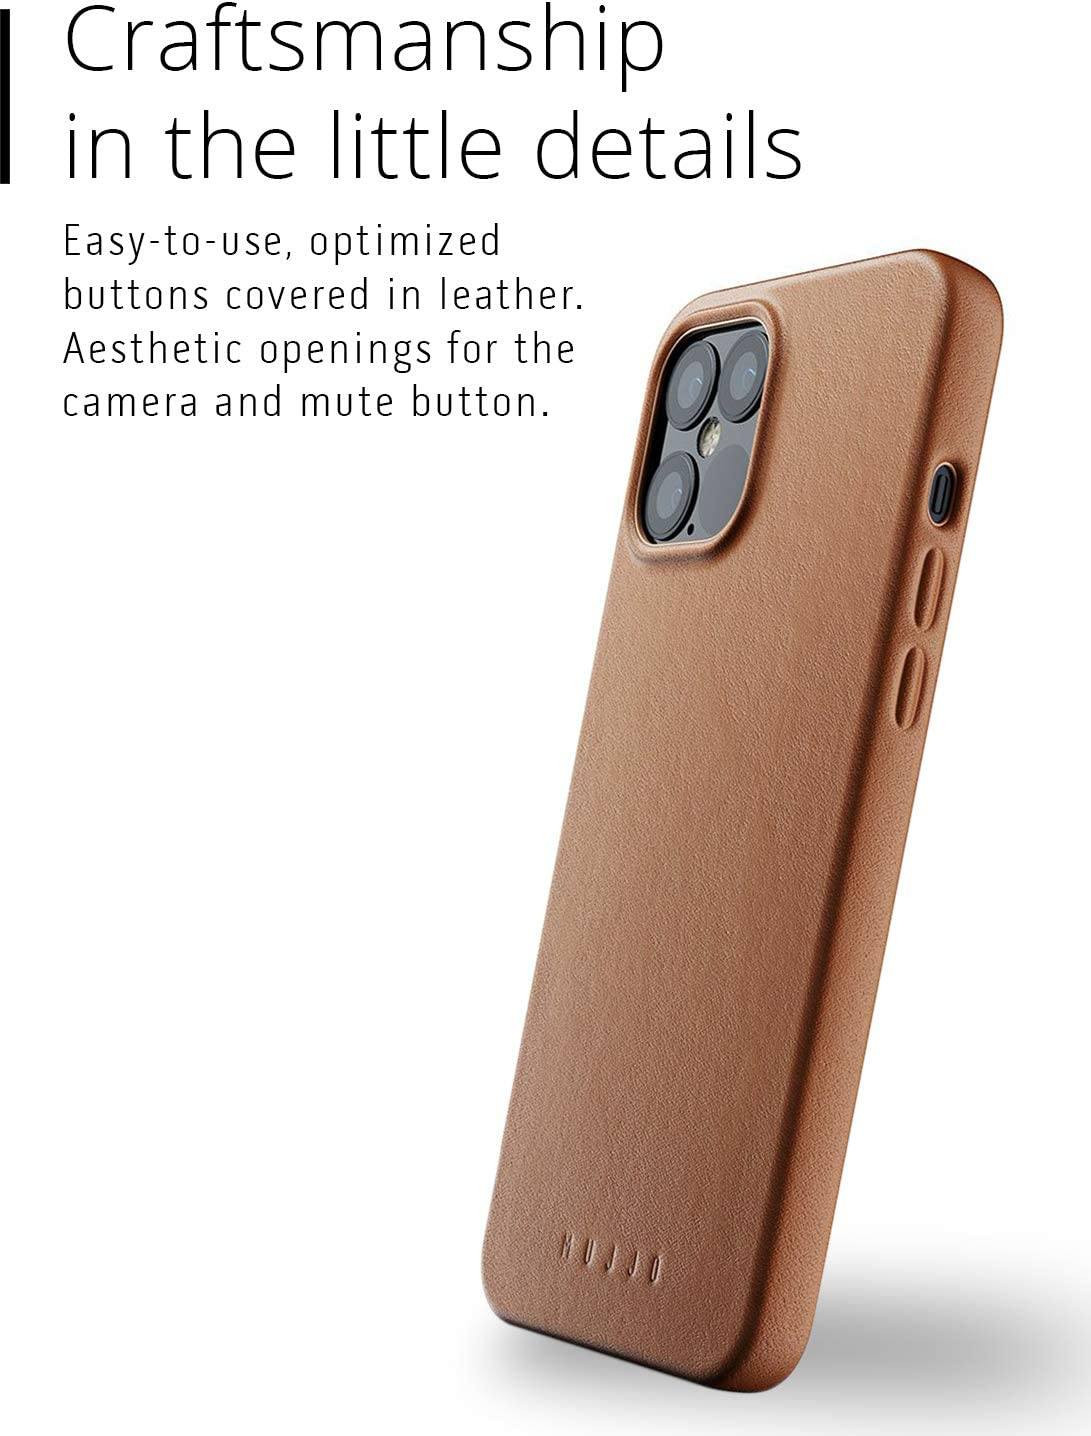 Mujjo Full Leather Case for iPhone 12 Pro Max Tan Super Slim Fit Design Premium Genuine Leather Natural Aging Effect Wireless Charging